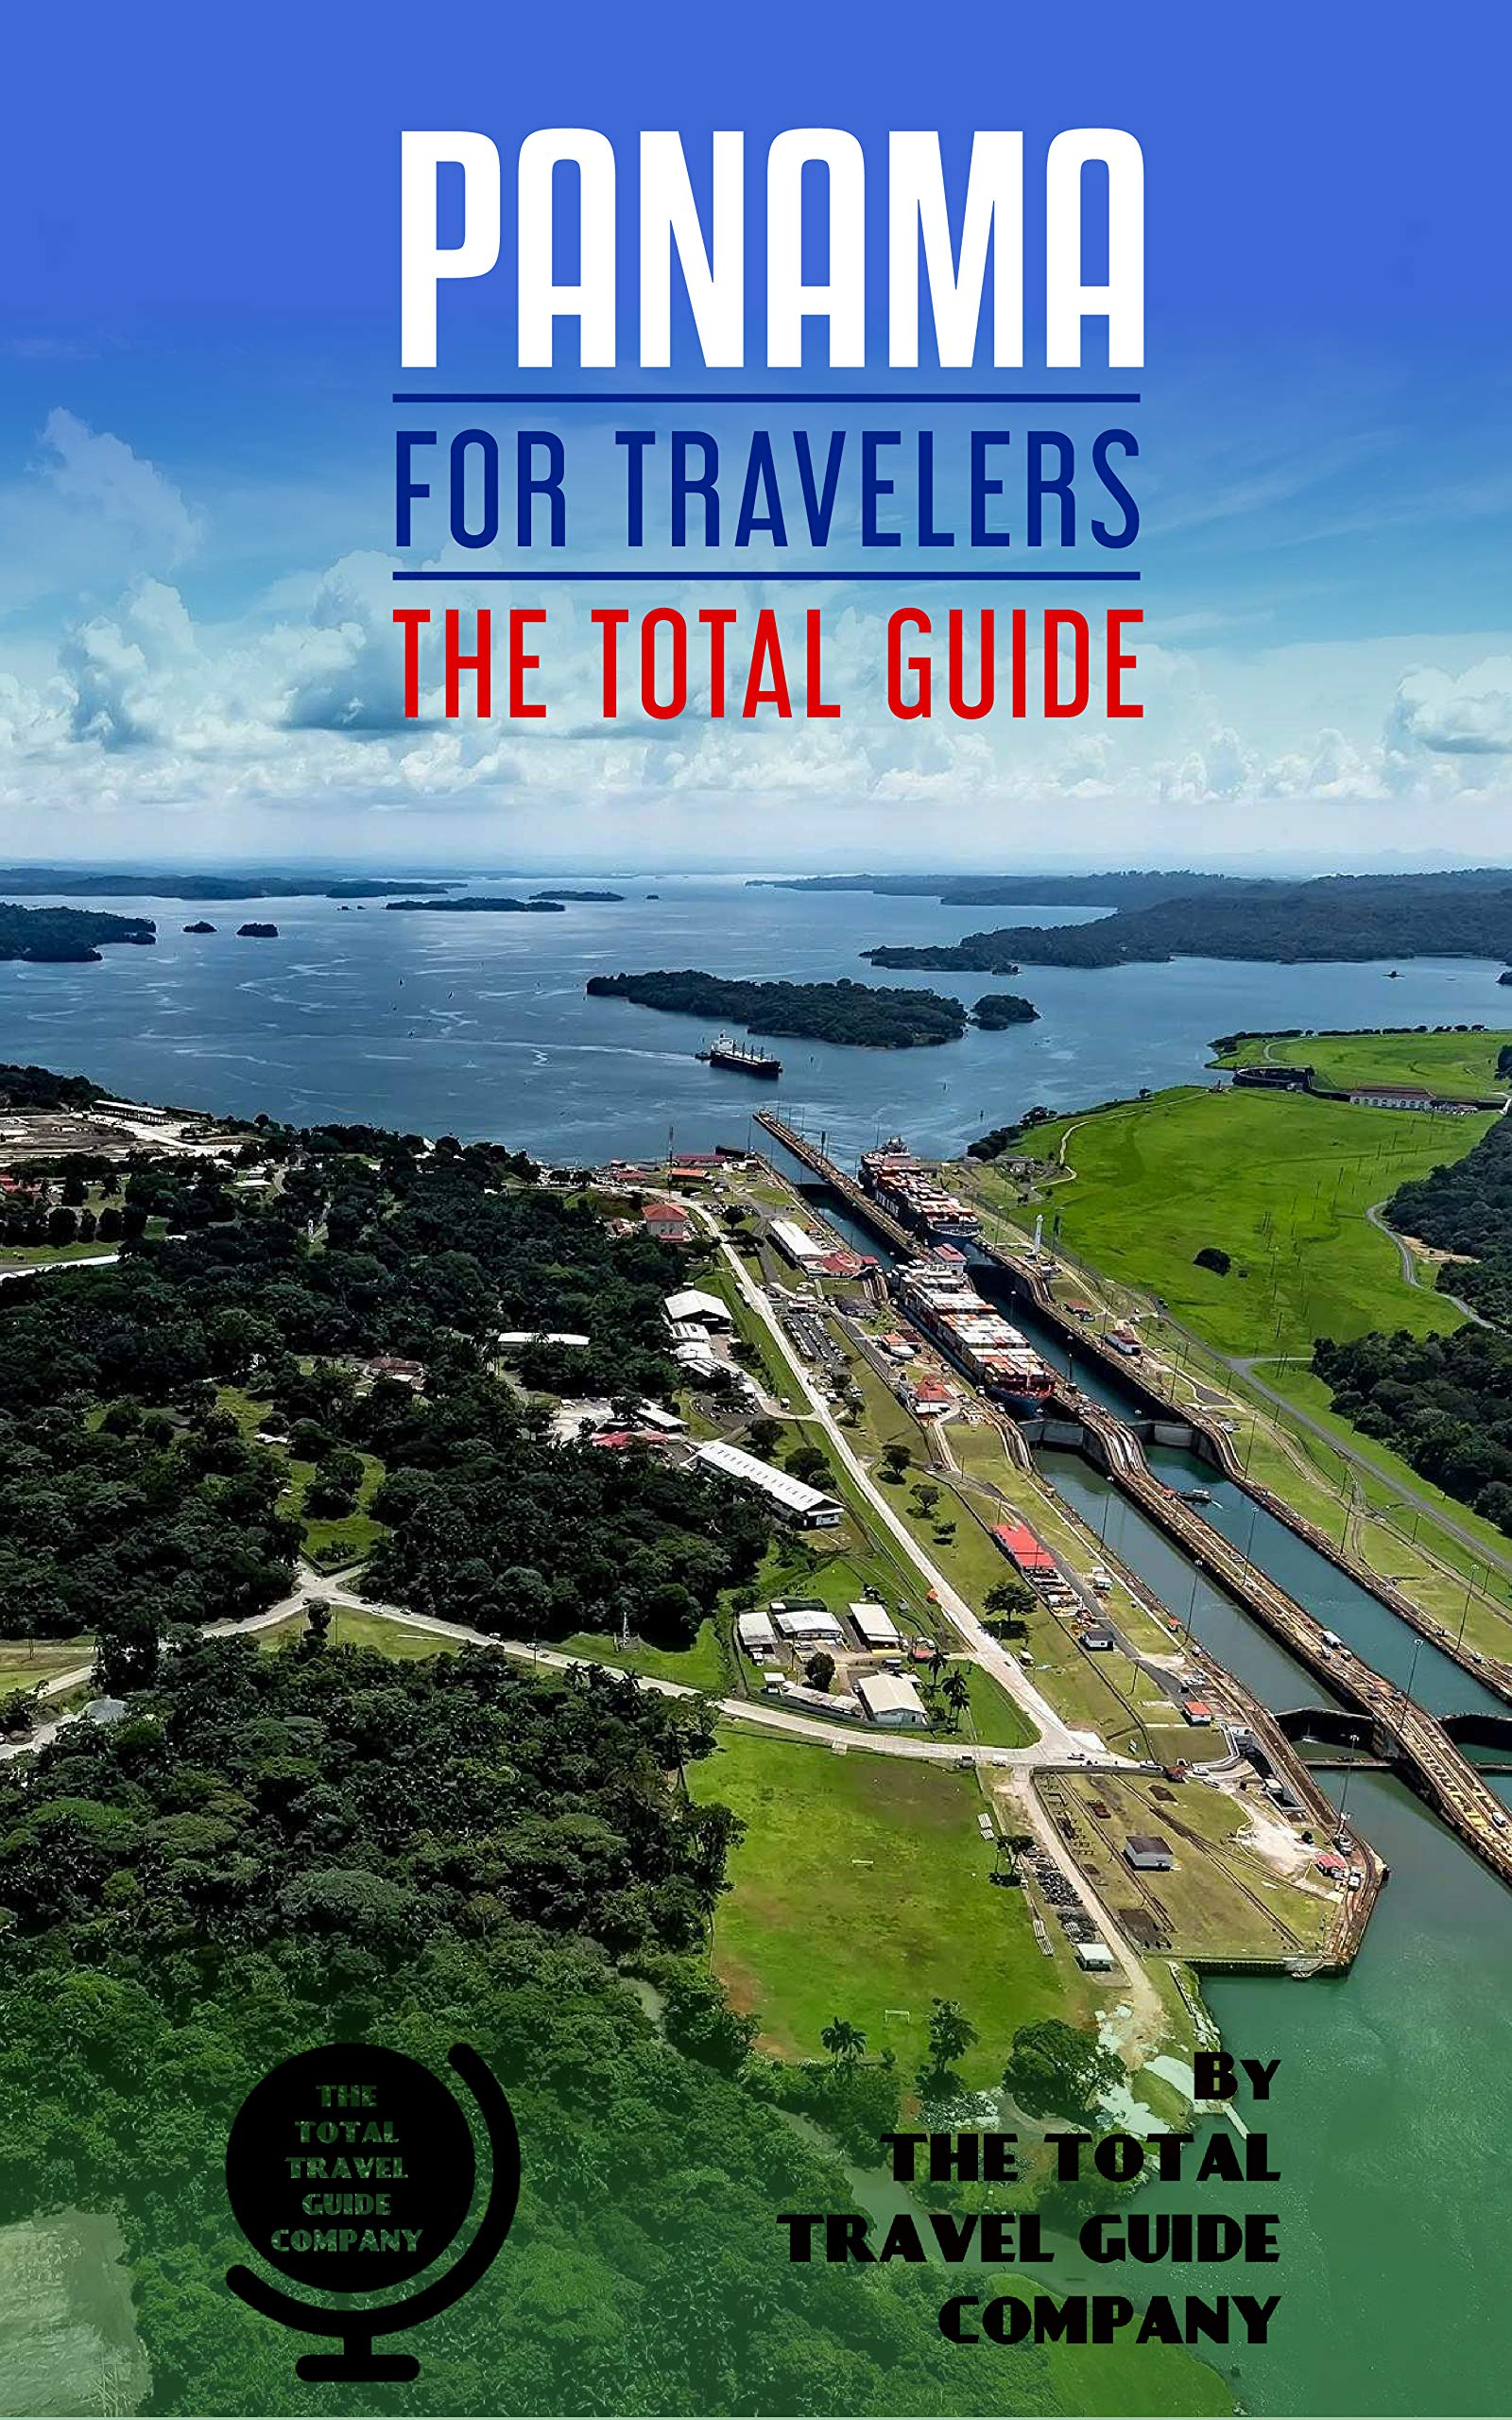 PANAMA FOR TRAVELERS. The Total Guide   The Comprehensive Traveling Guide For All Your Traveling Needs. By THE TOTAL TRAVEL GUIDE COMPANY  English Edition